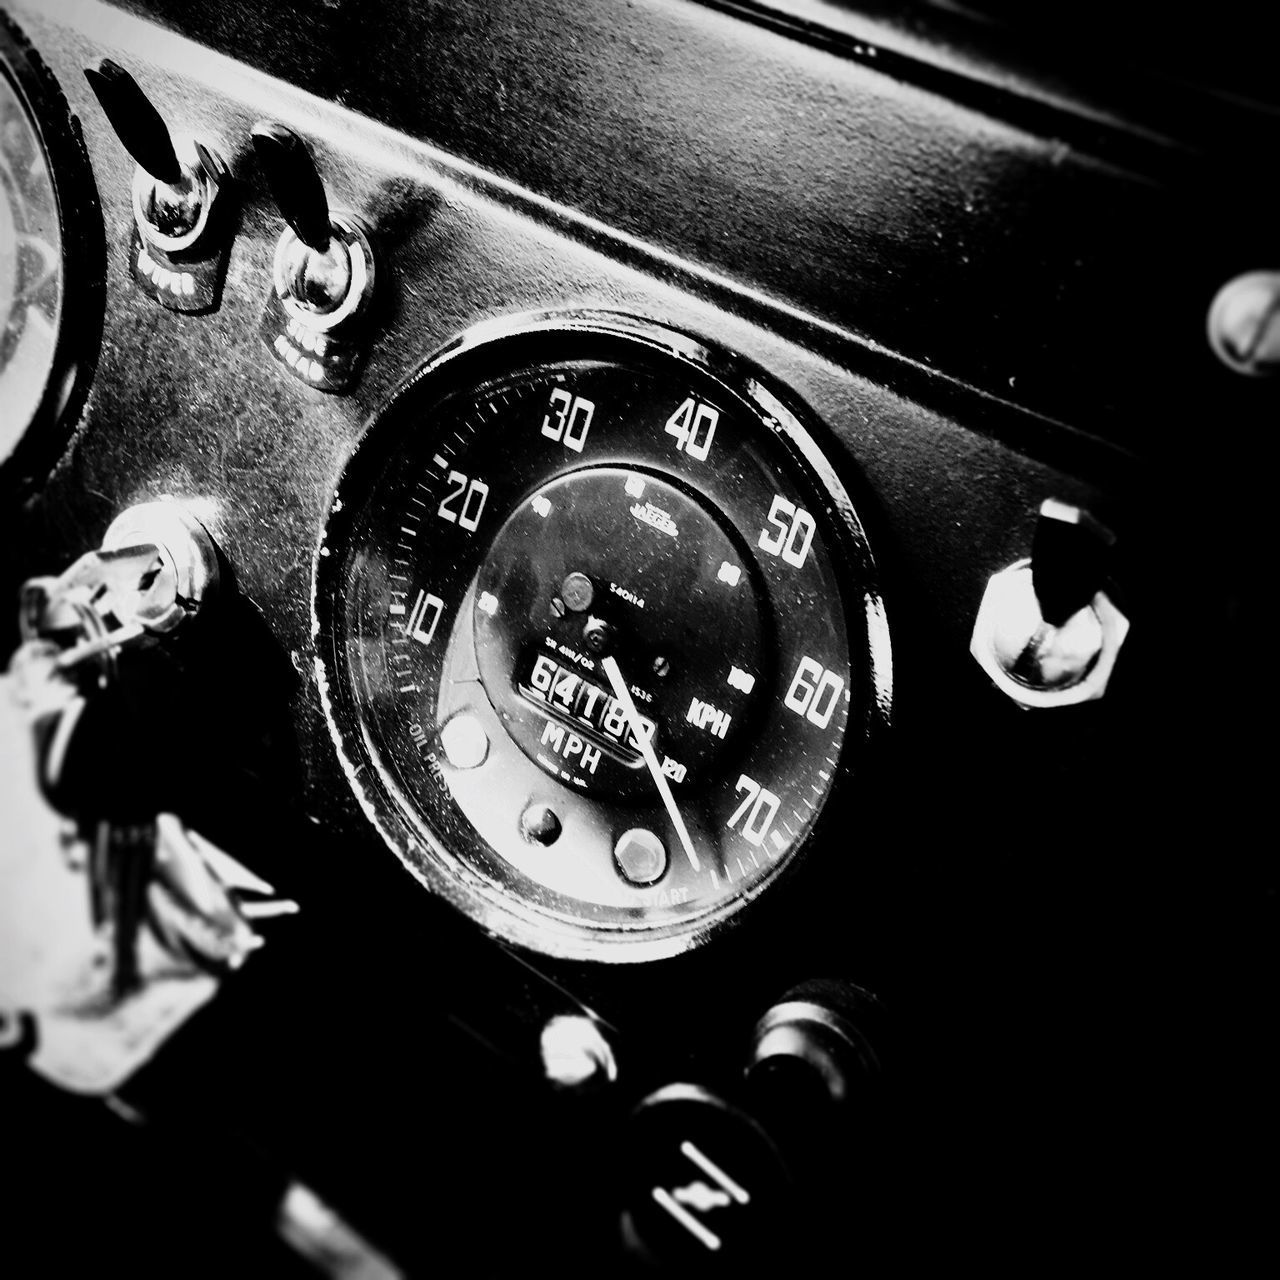 Max Speed. Old-fashioned Car Interior Car Dashboard Close-up Retro Styled Speedometer Blackandwhite Photography Blackandwhite Monochrome Monochrome Photography Max Speed Crazy Speed Max 75 Miles British Car Classic Car Land Rover LAND ROVER SERIES 2 Land Rover Series